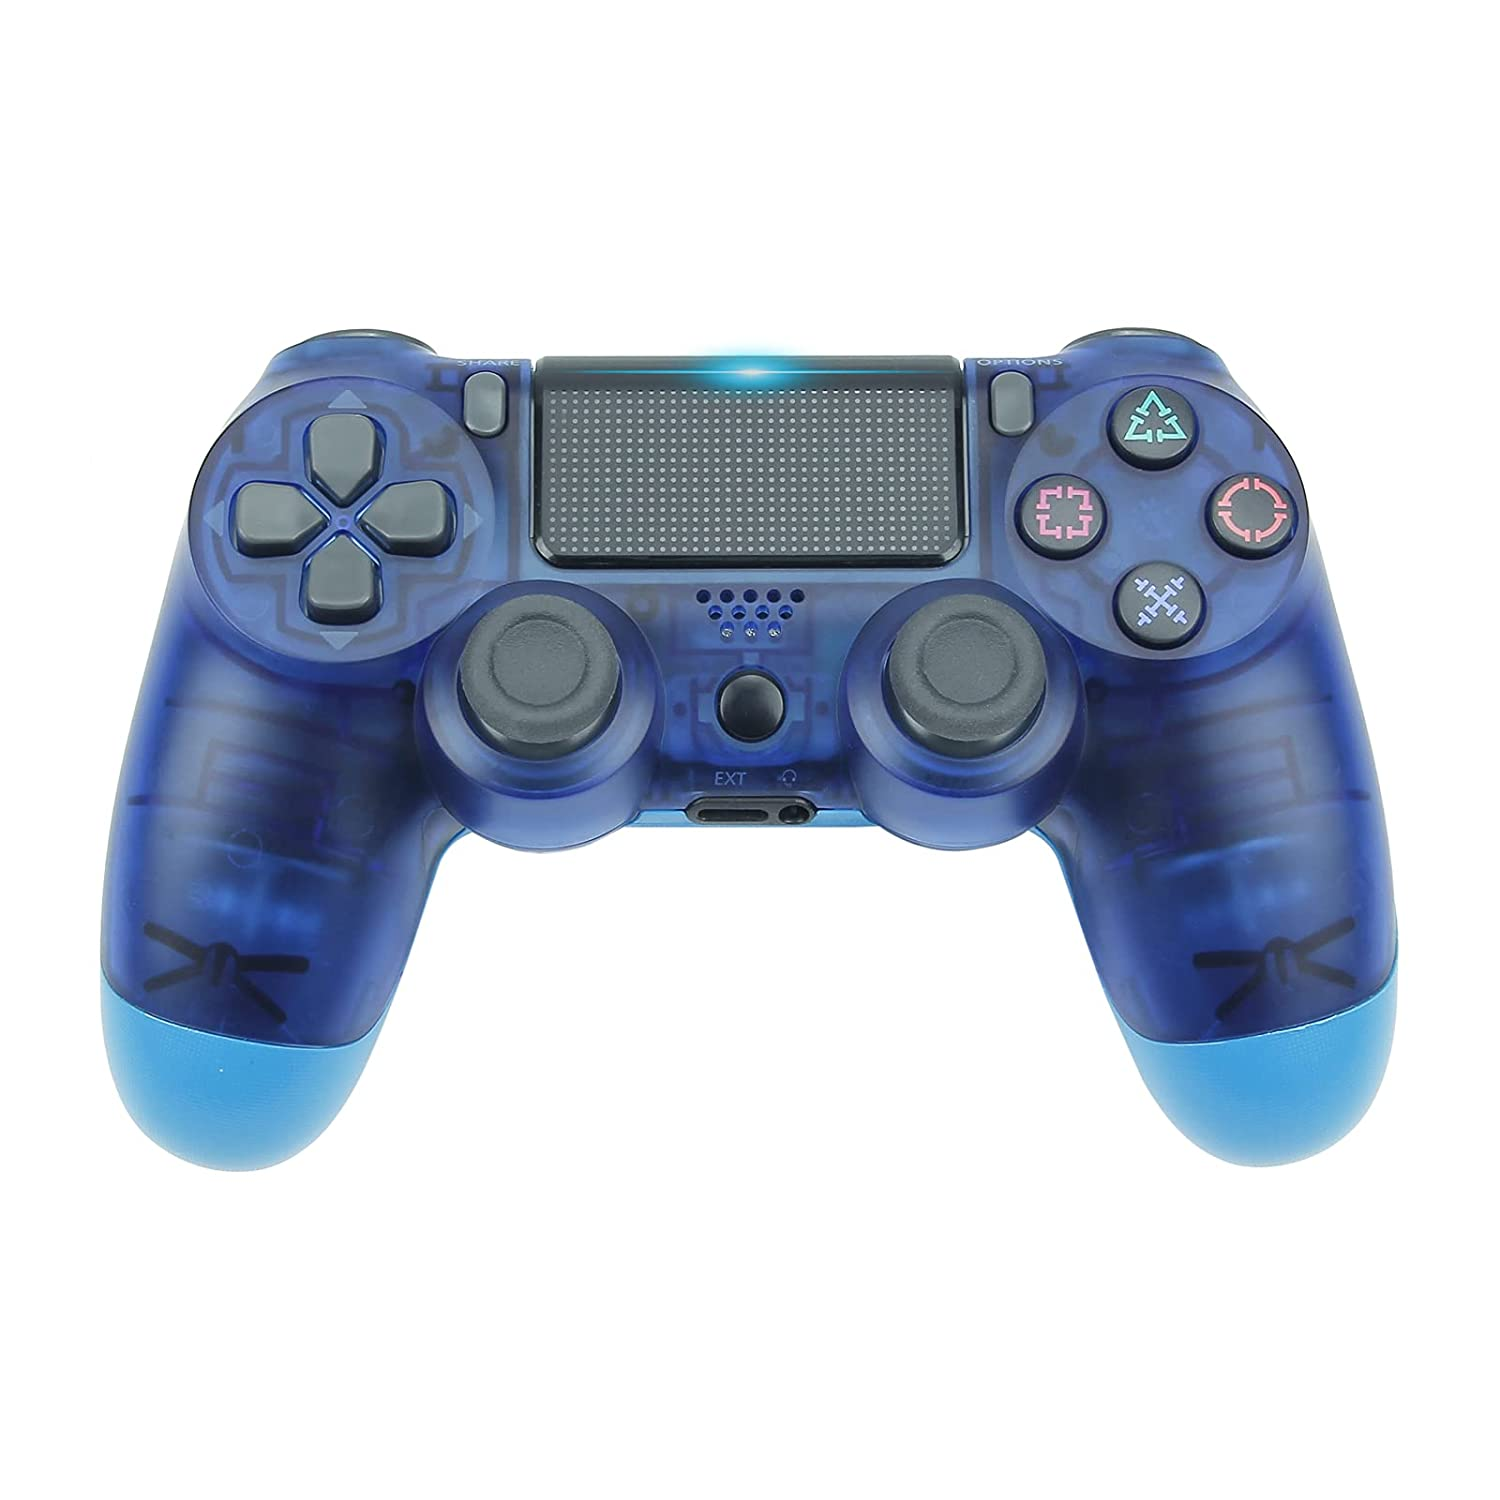 Ps4 controller-audio/Gamepad remote joystick, suitable Playstation 4 / Slim game console (Clear Blue)